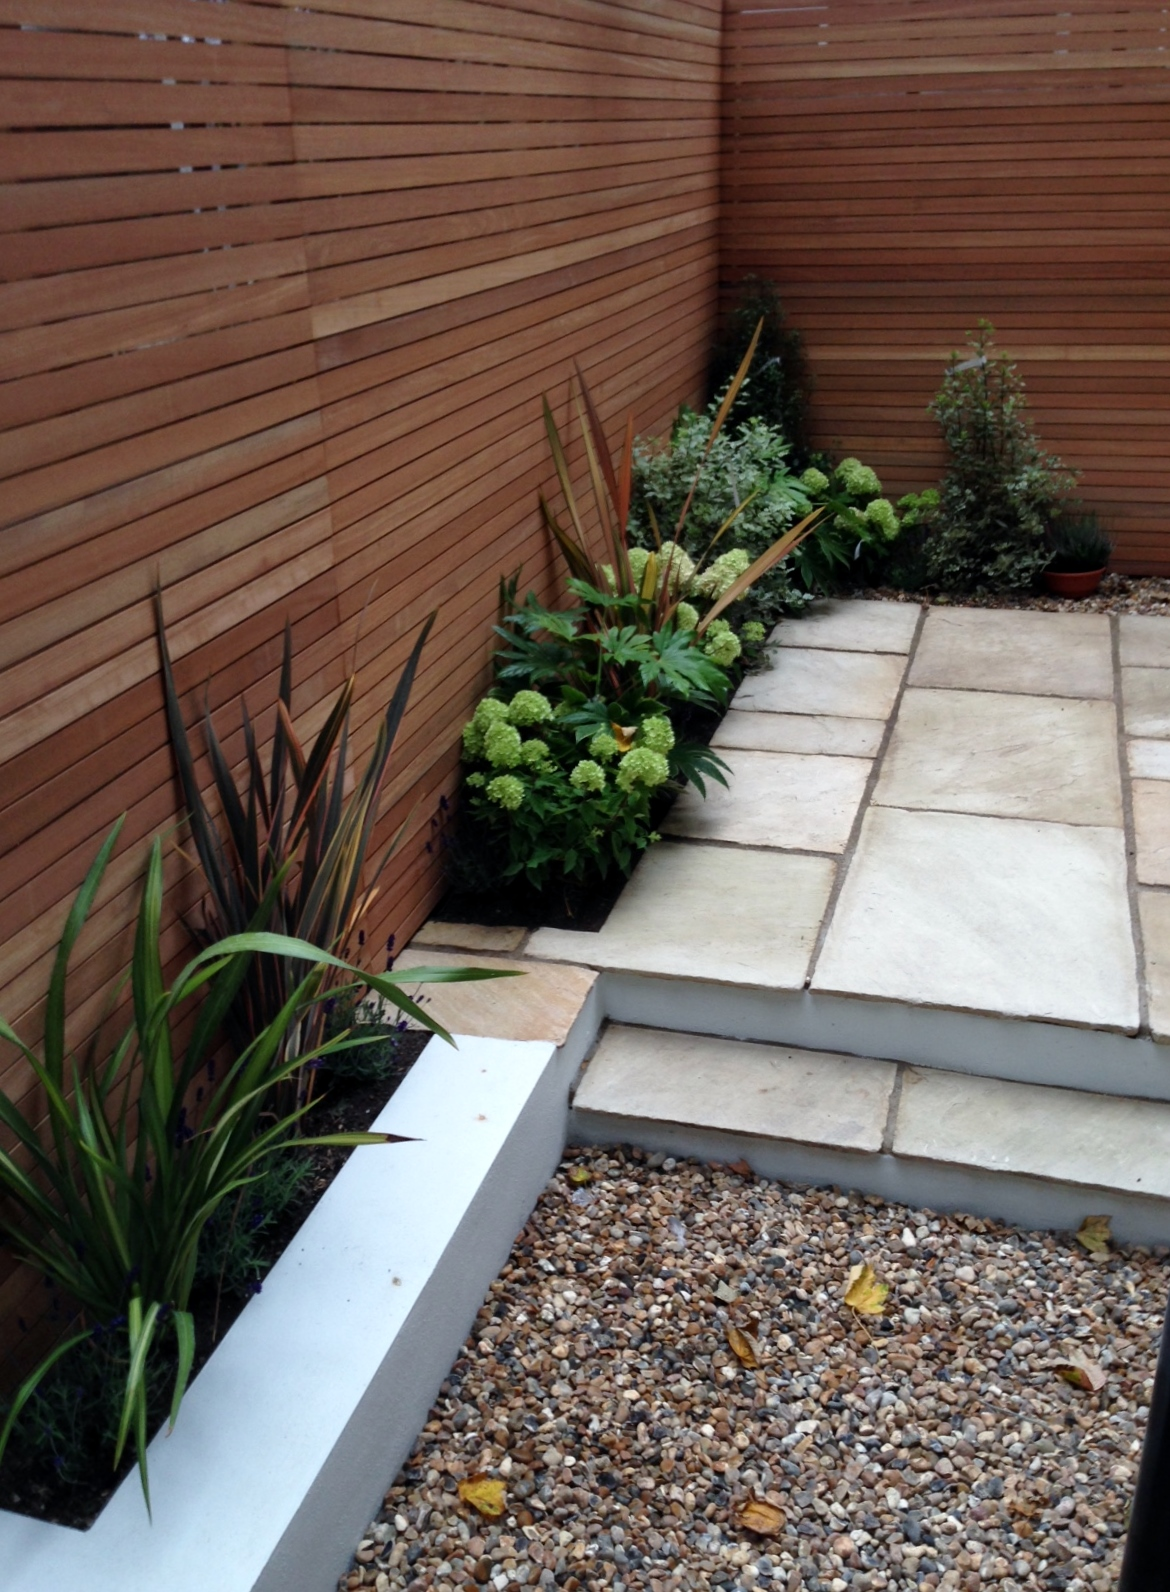 clapham garden design sandstone paving hardwood privacy screen shingle trellis fence modern low maintenance ideas (9)